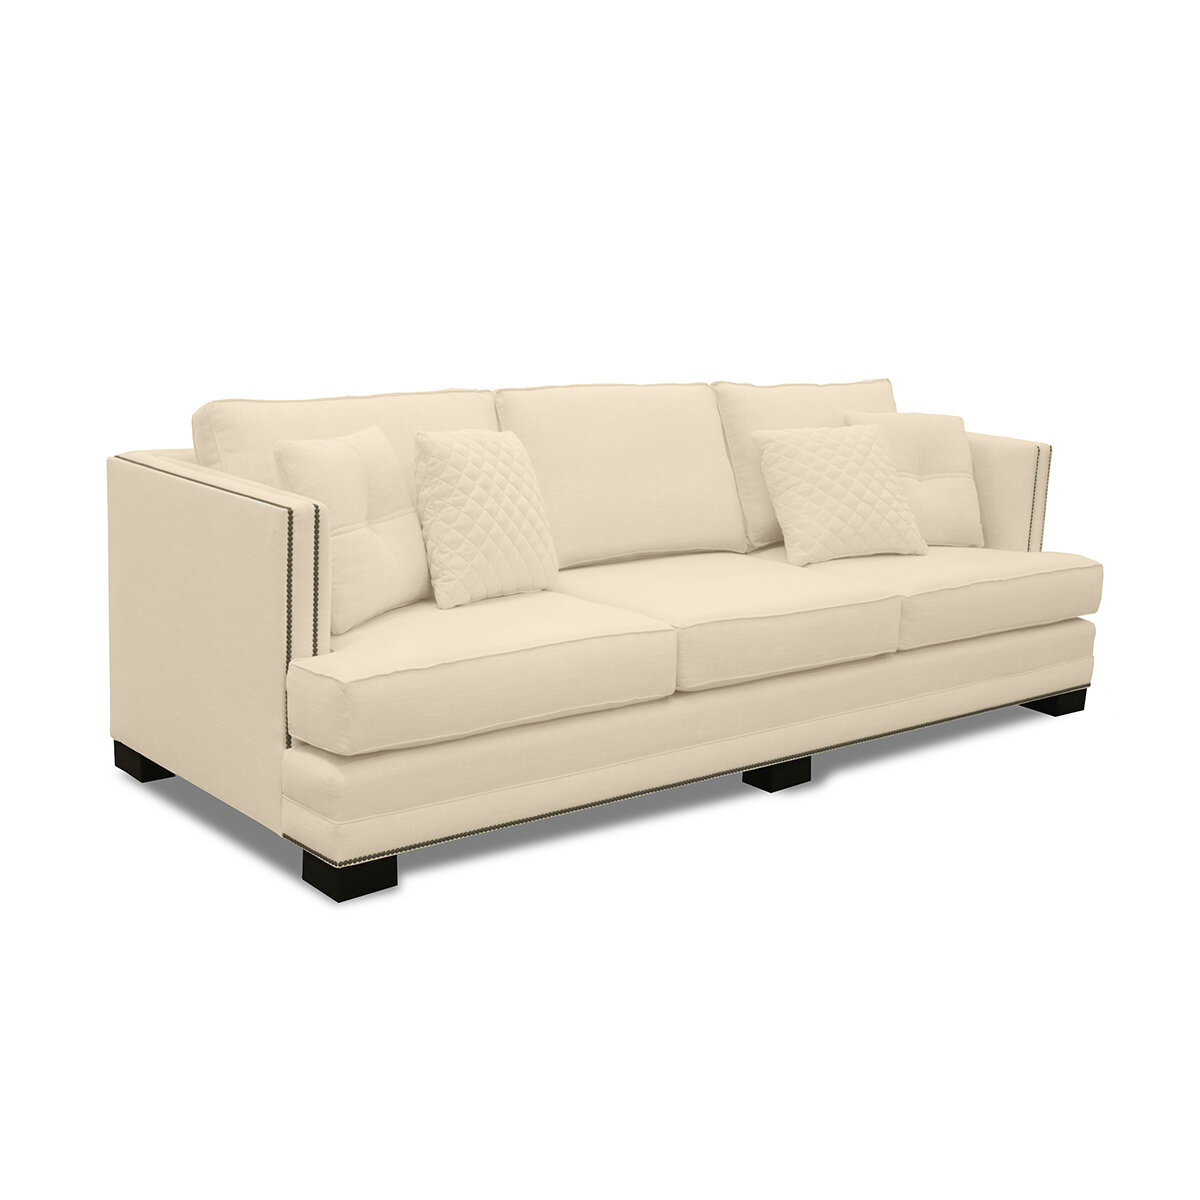 South Cone Home West Lux Microfiber 108